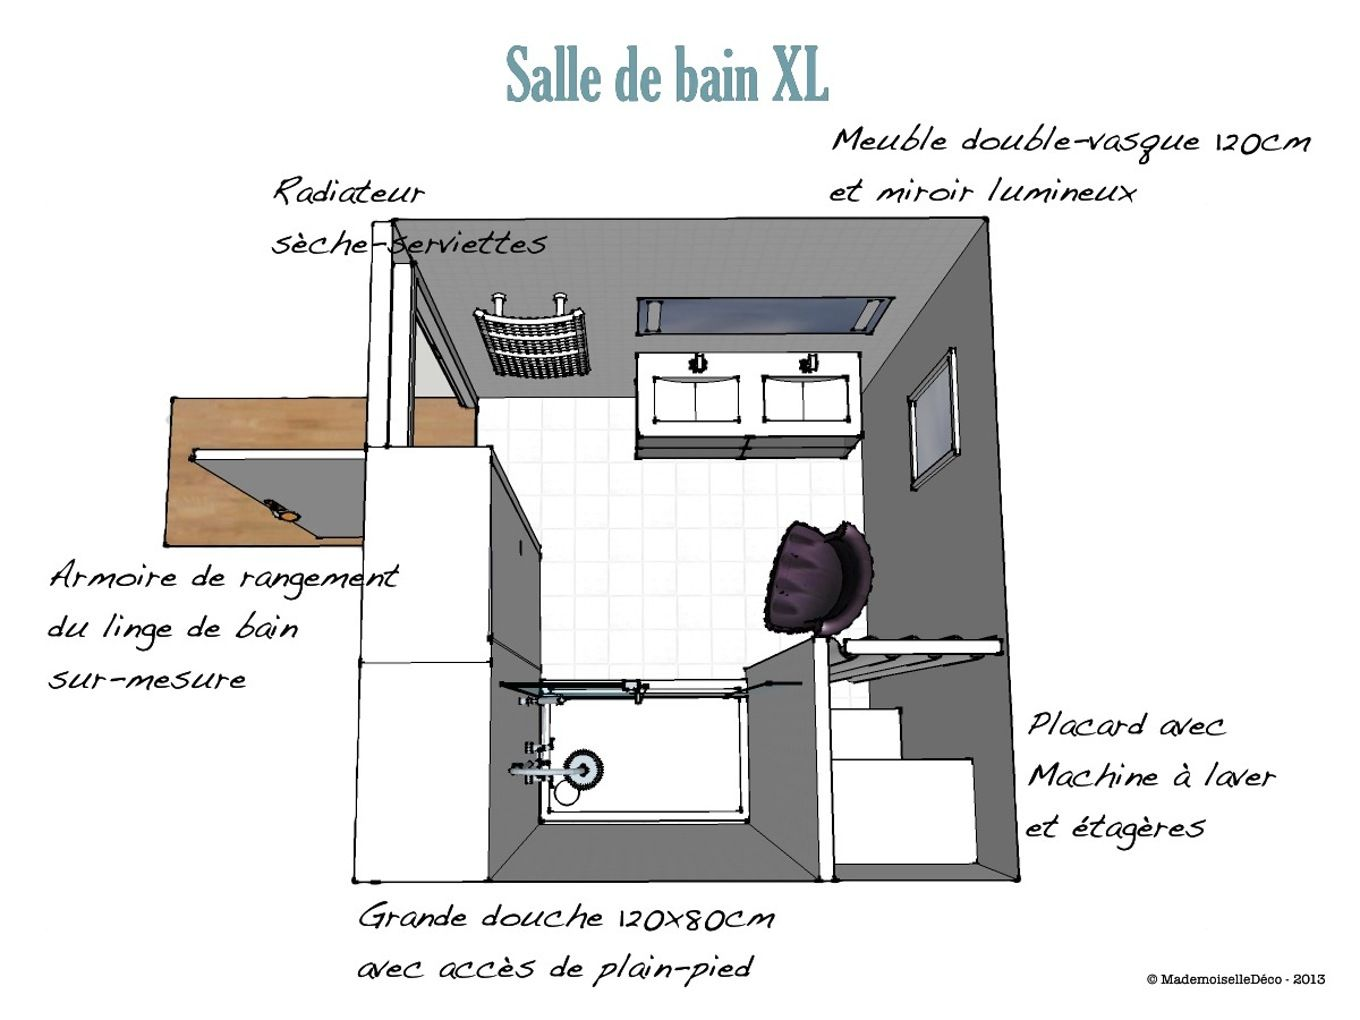 Plan Salle De Bain M Image Gallery Of Bright Design Bathroom - Schéma salle de bain